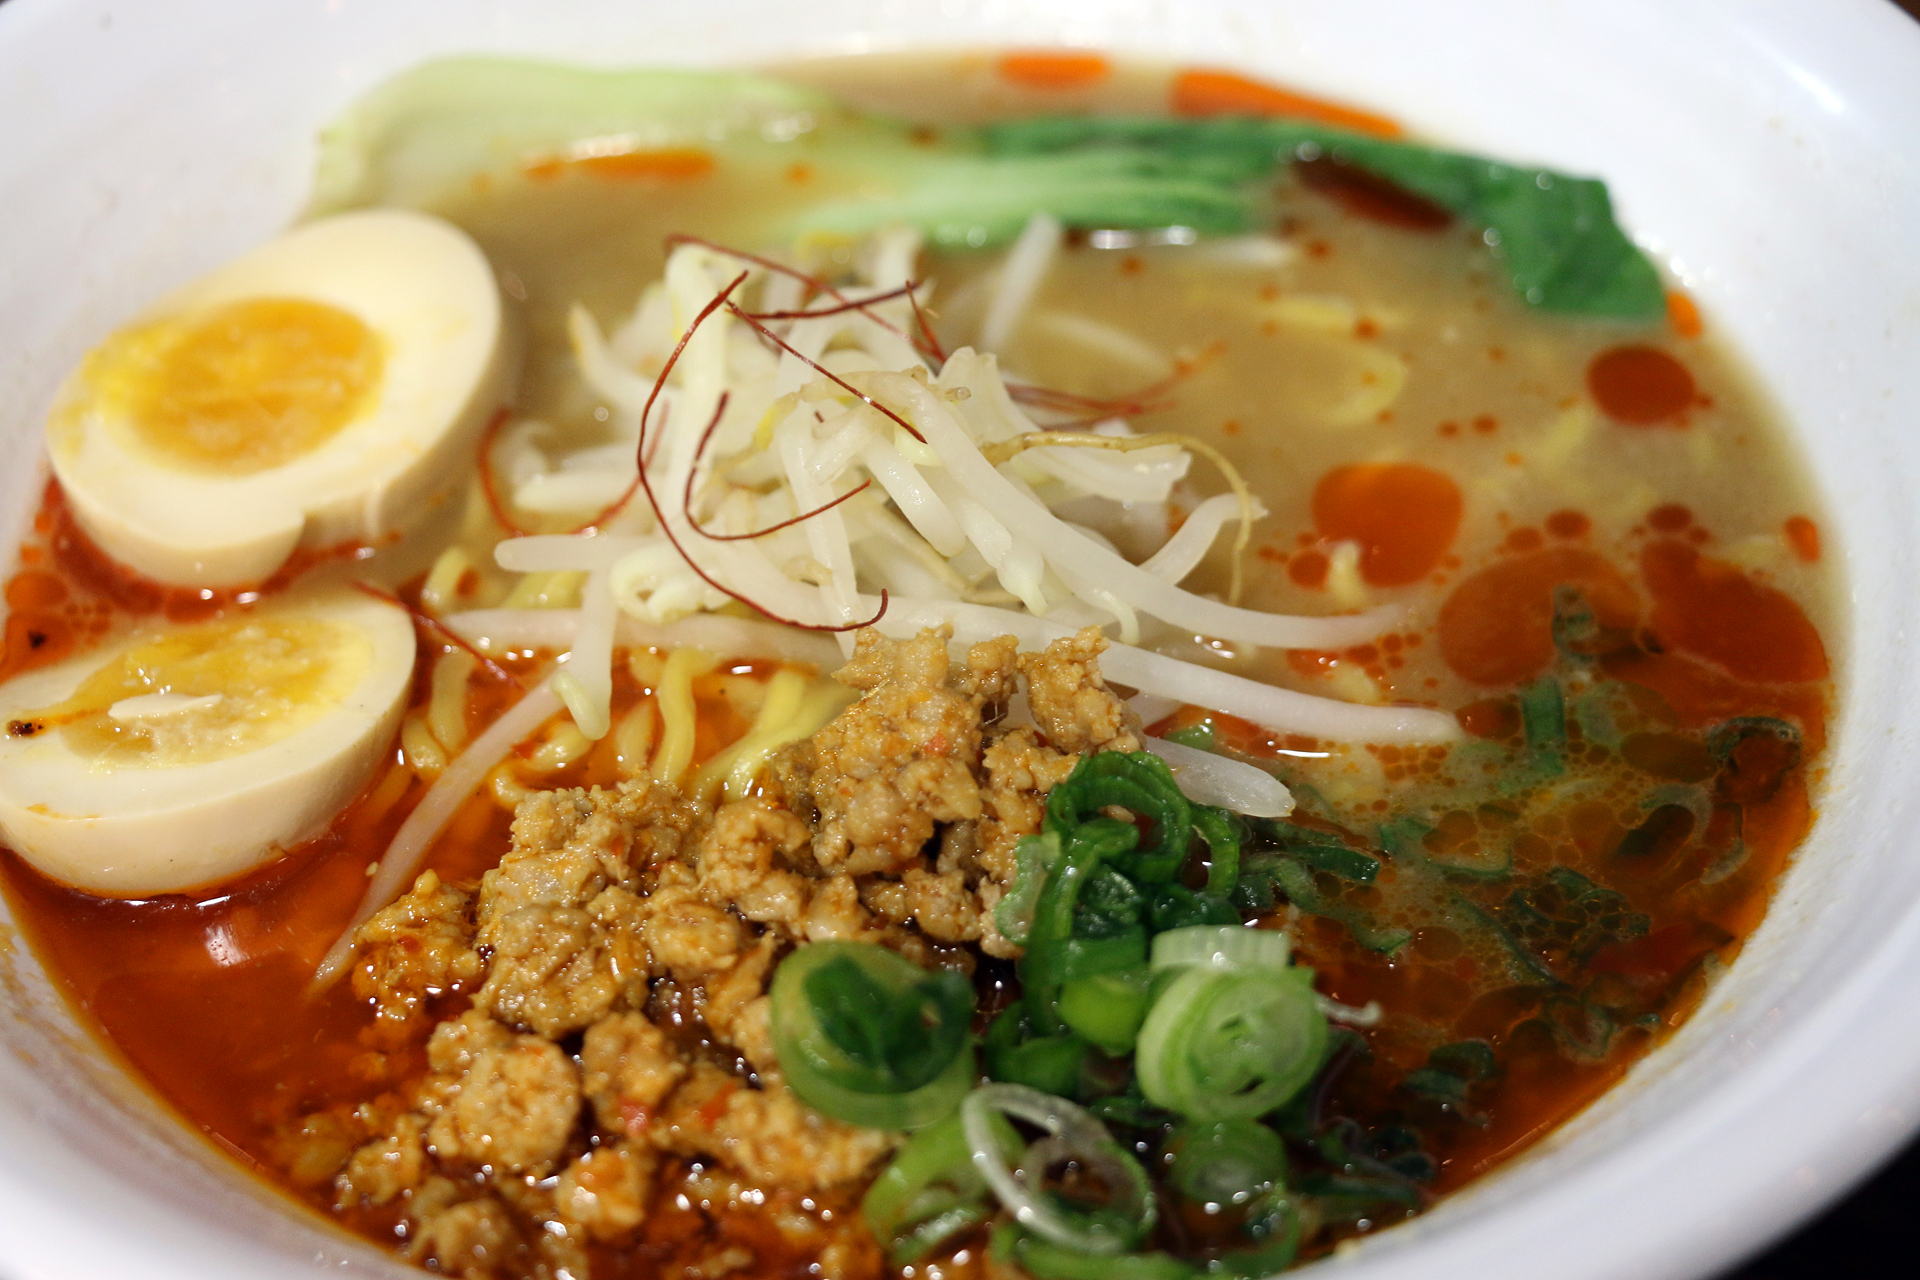 Spicy ramen with ground pork